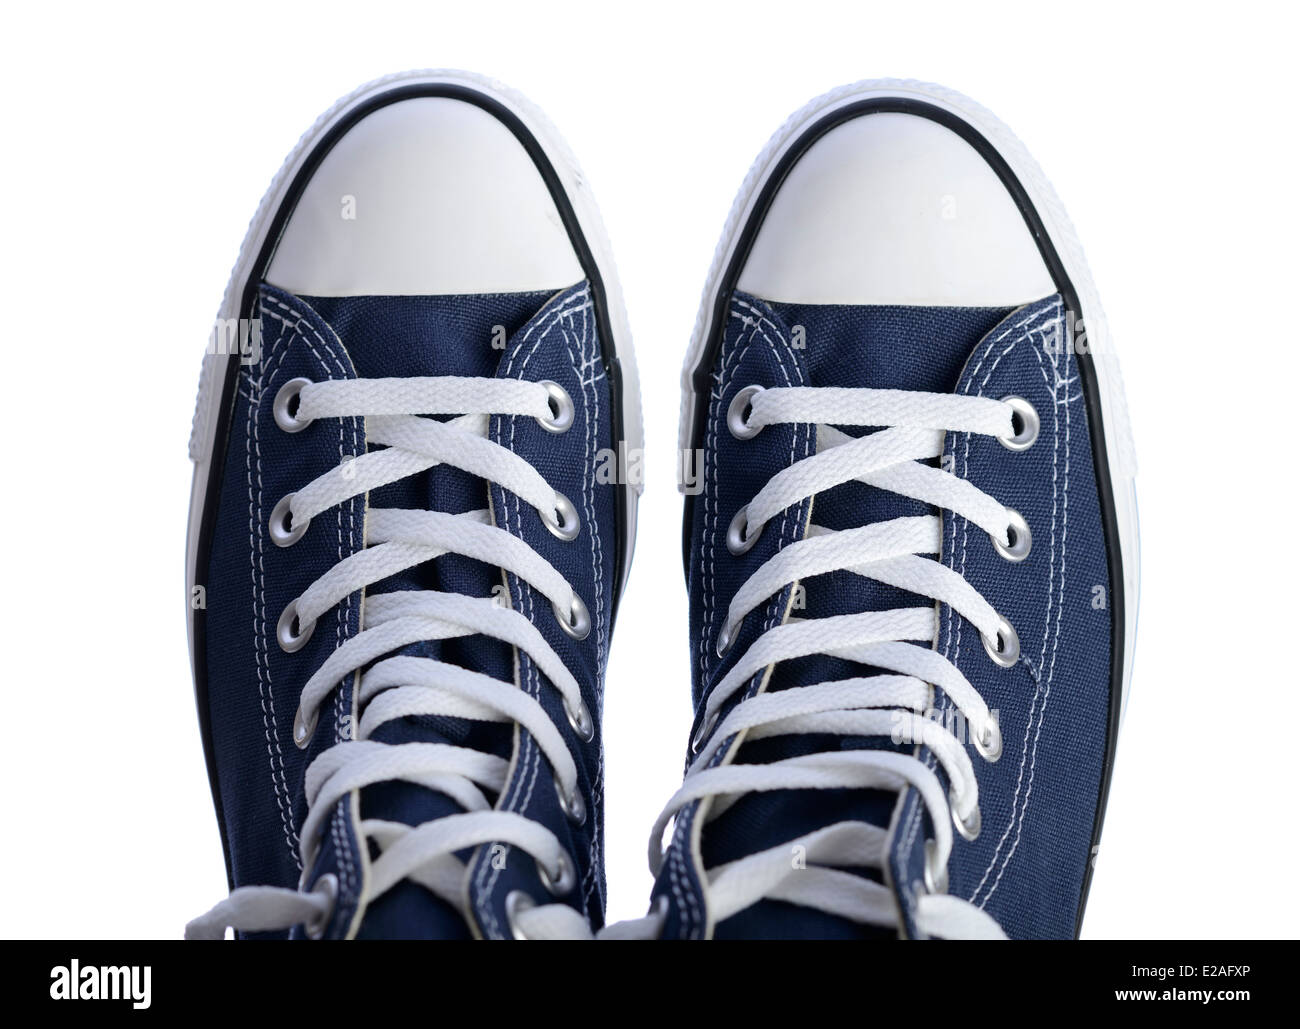 Blue canvas sneakers from above - Stock Image